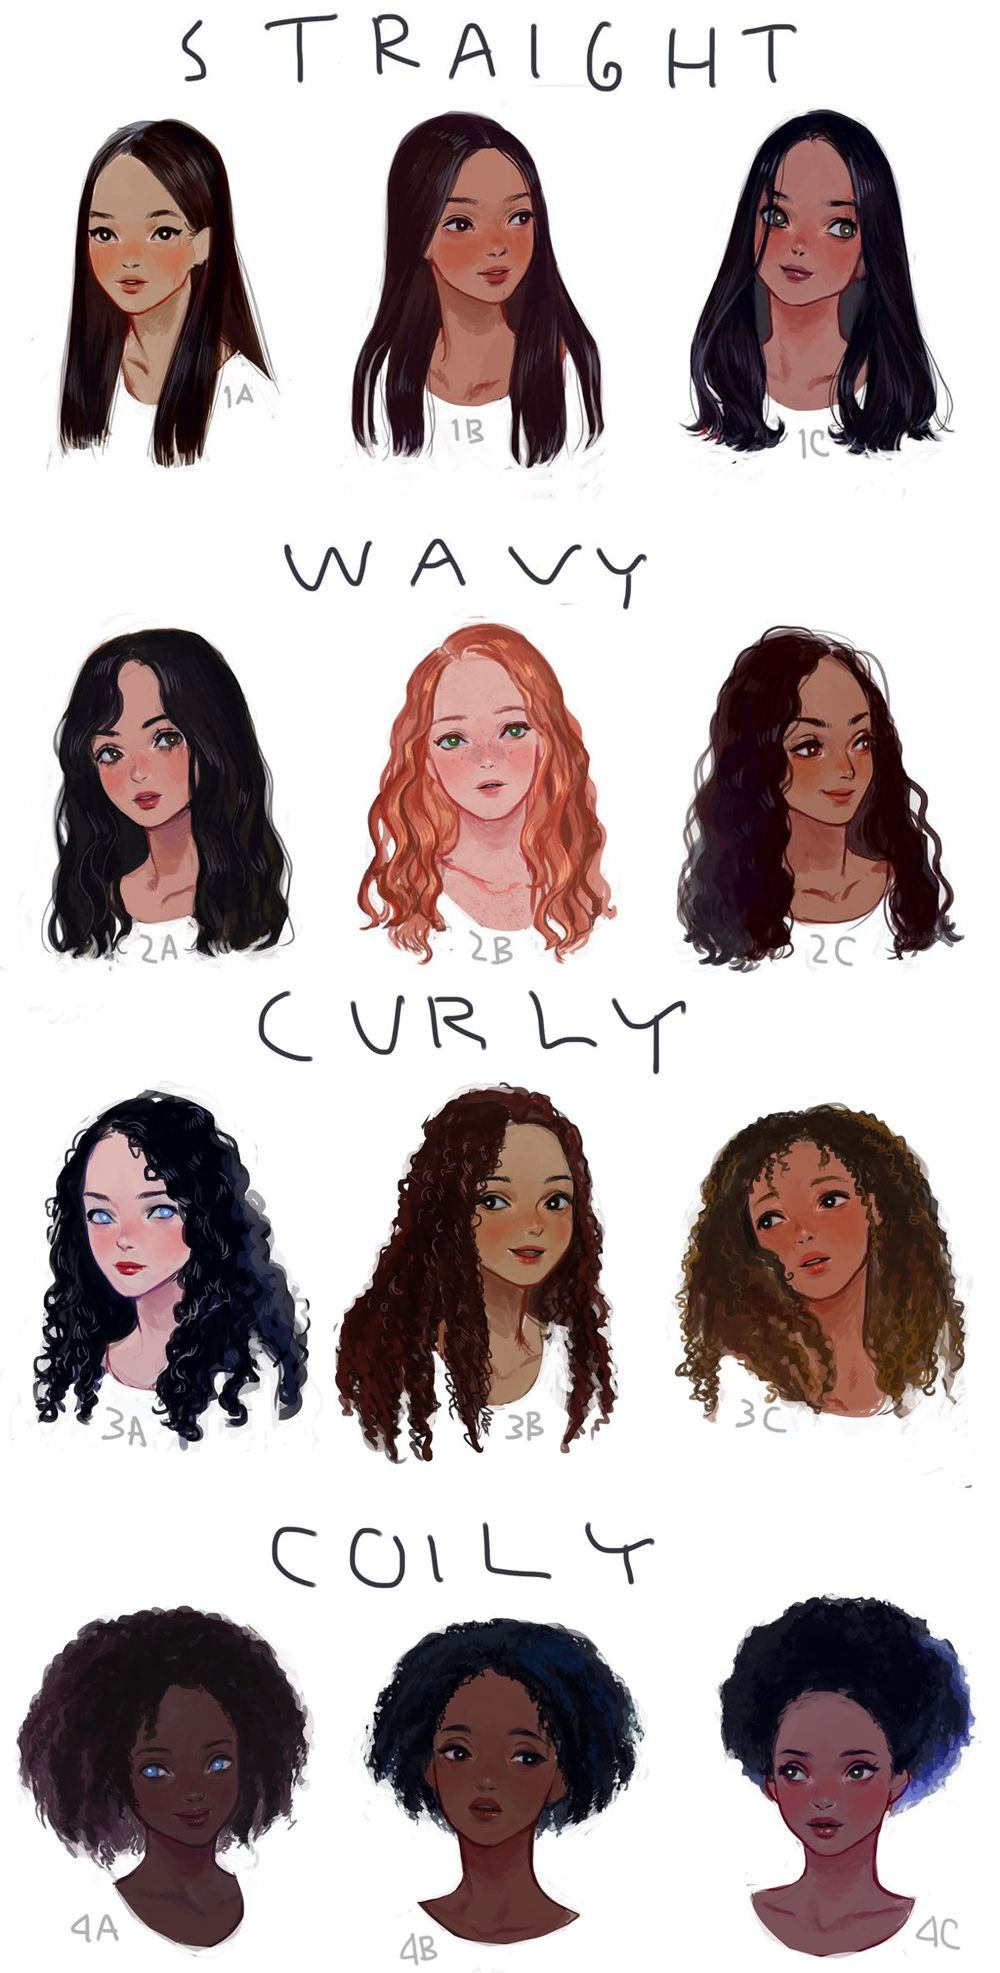 ALSO FOR PEOPLE THAT ARE LIKE, MY HAIR IS SO CURLY UGHH ...